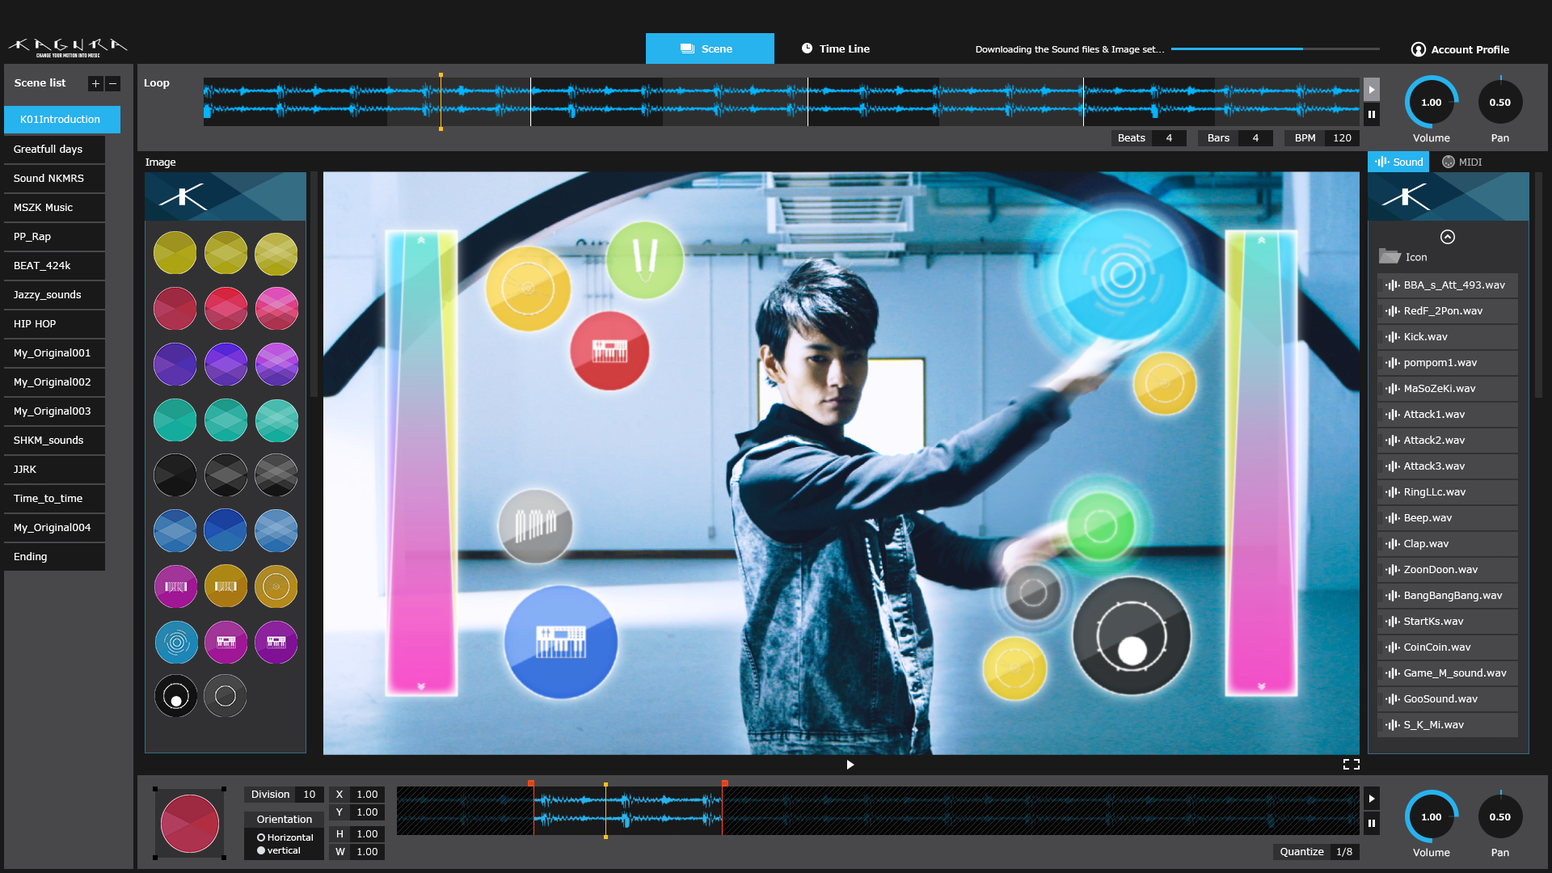 Revolutionary digital instrument that lets you make music simply by gesturing. KAGURA is motion made music.